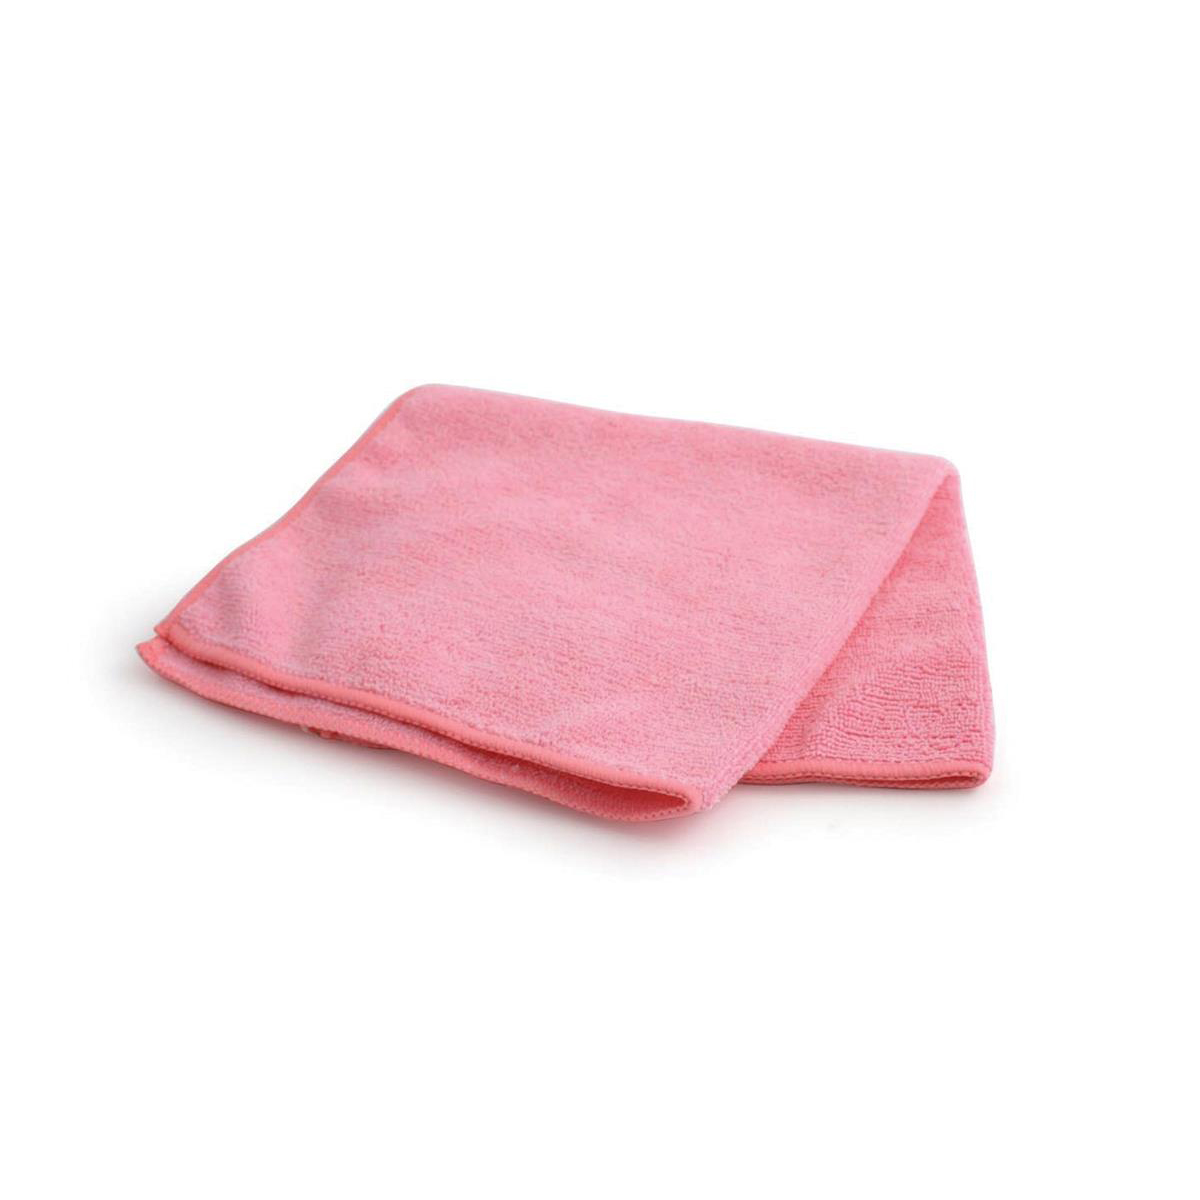 Maxima Glass Cloths Anti-bacterial Microfibre Pink Ref 0707202 [Pack 10]